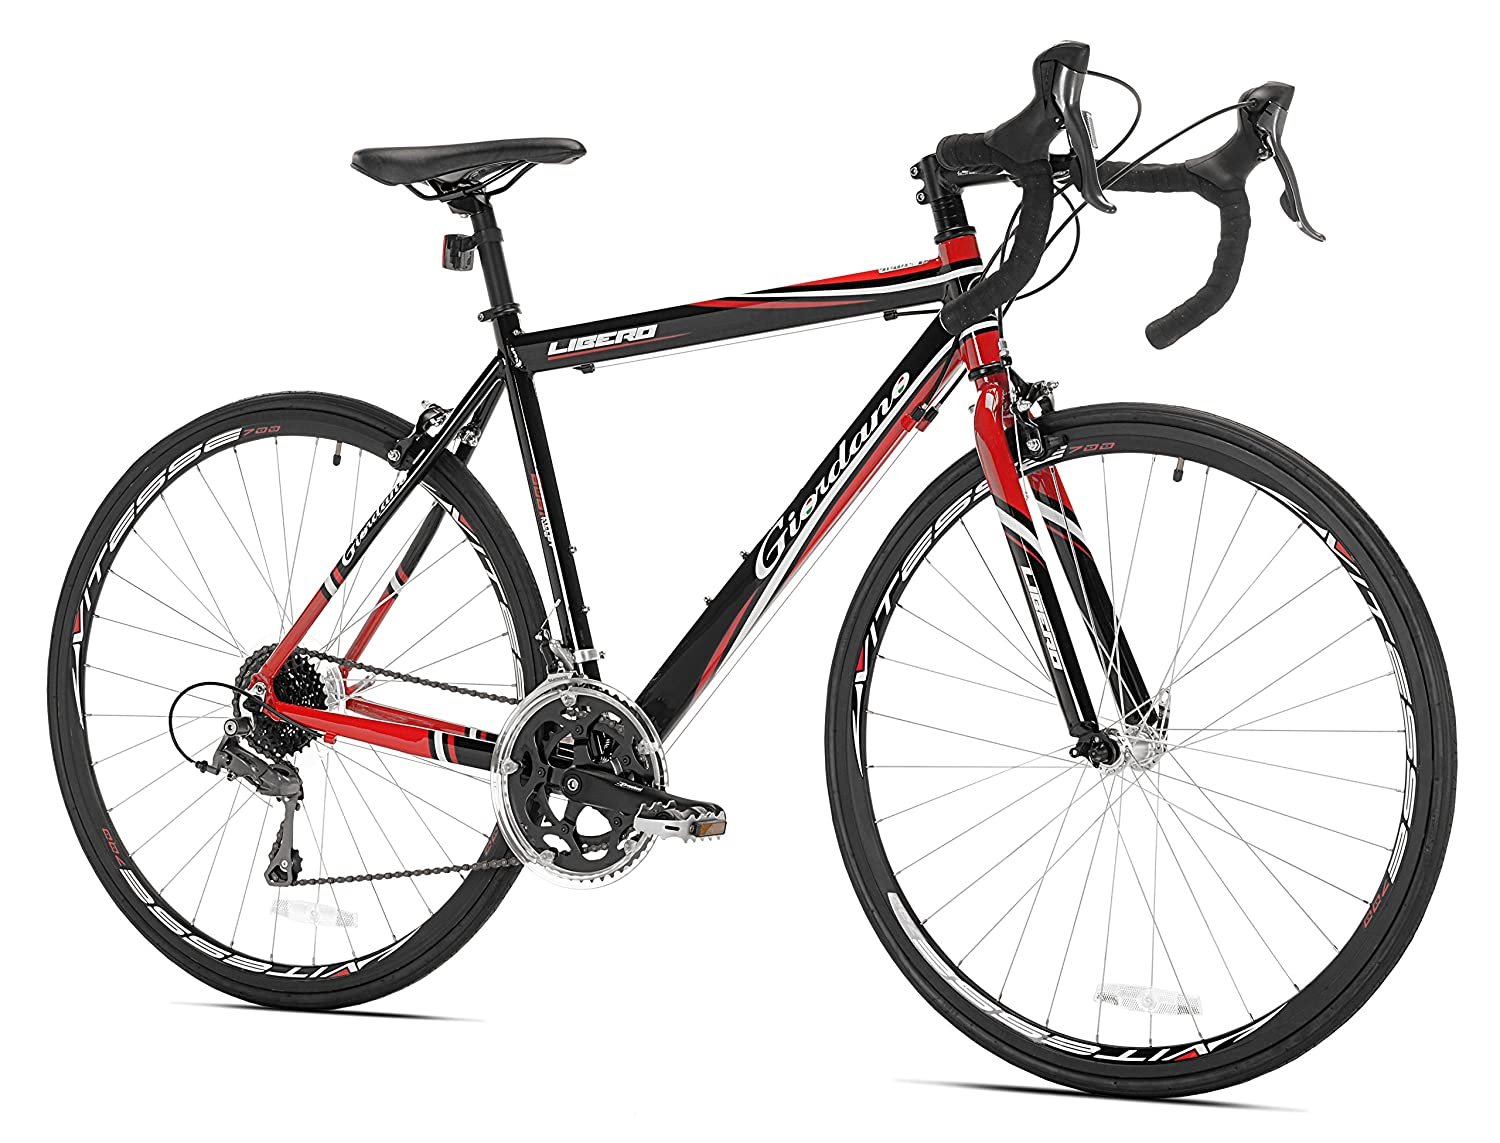 Giordano Libero 1.6 Men's Road Bike-700c